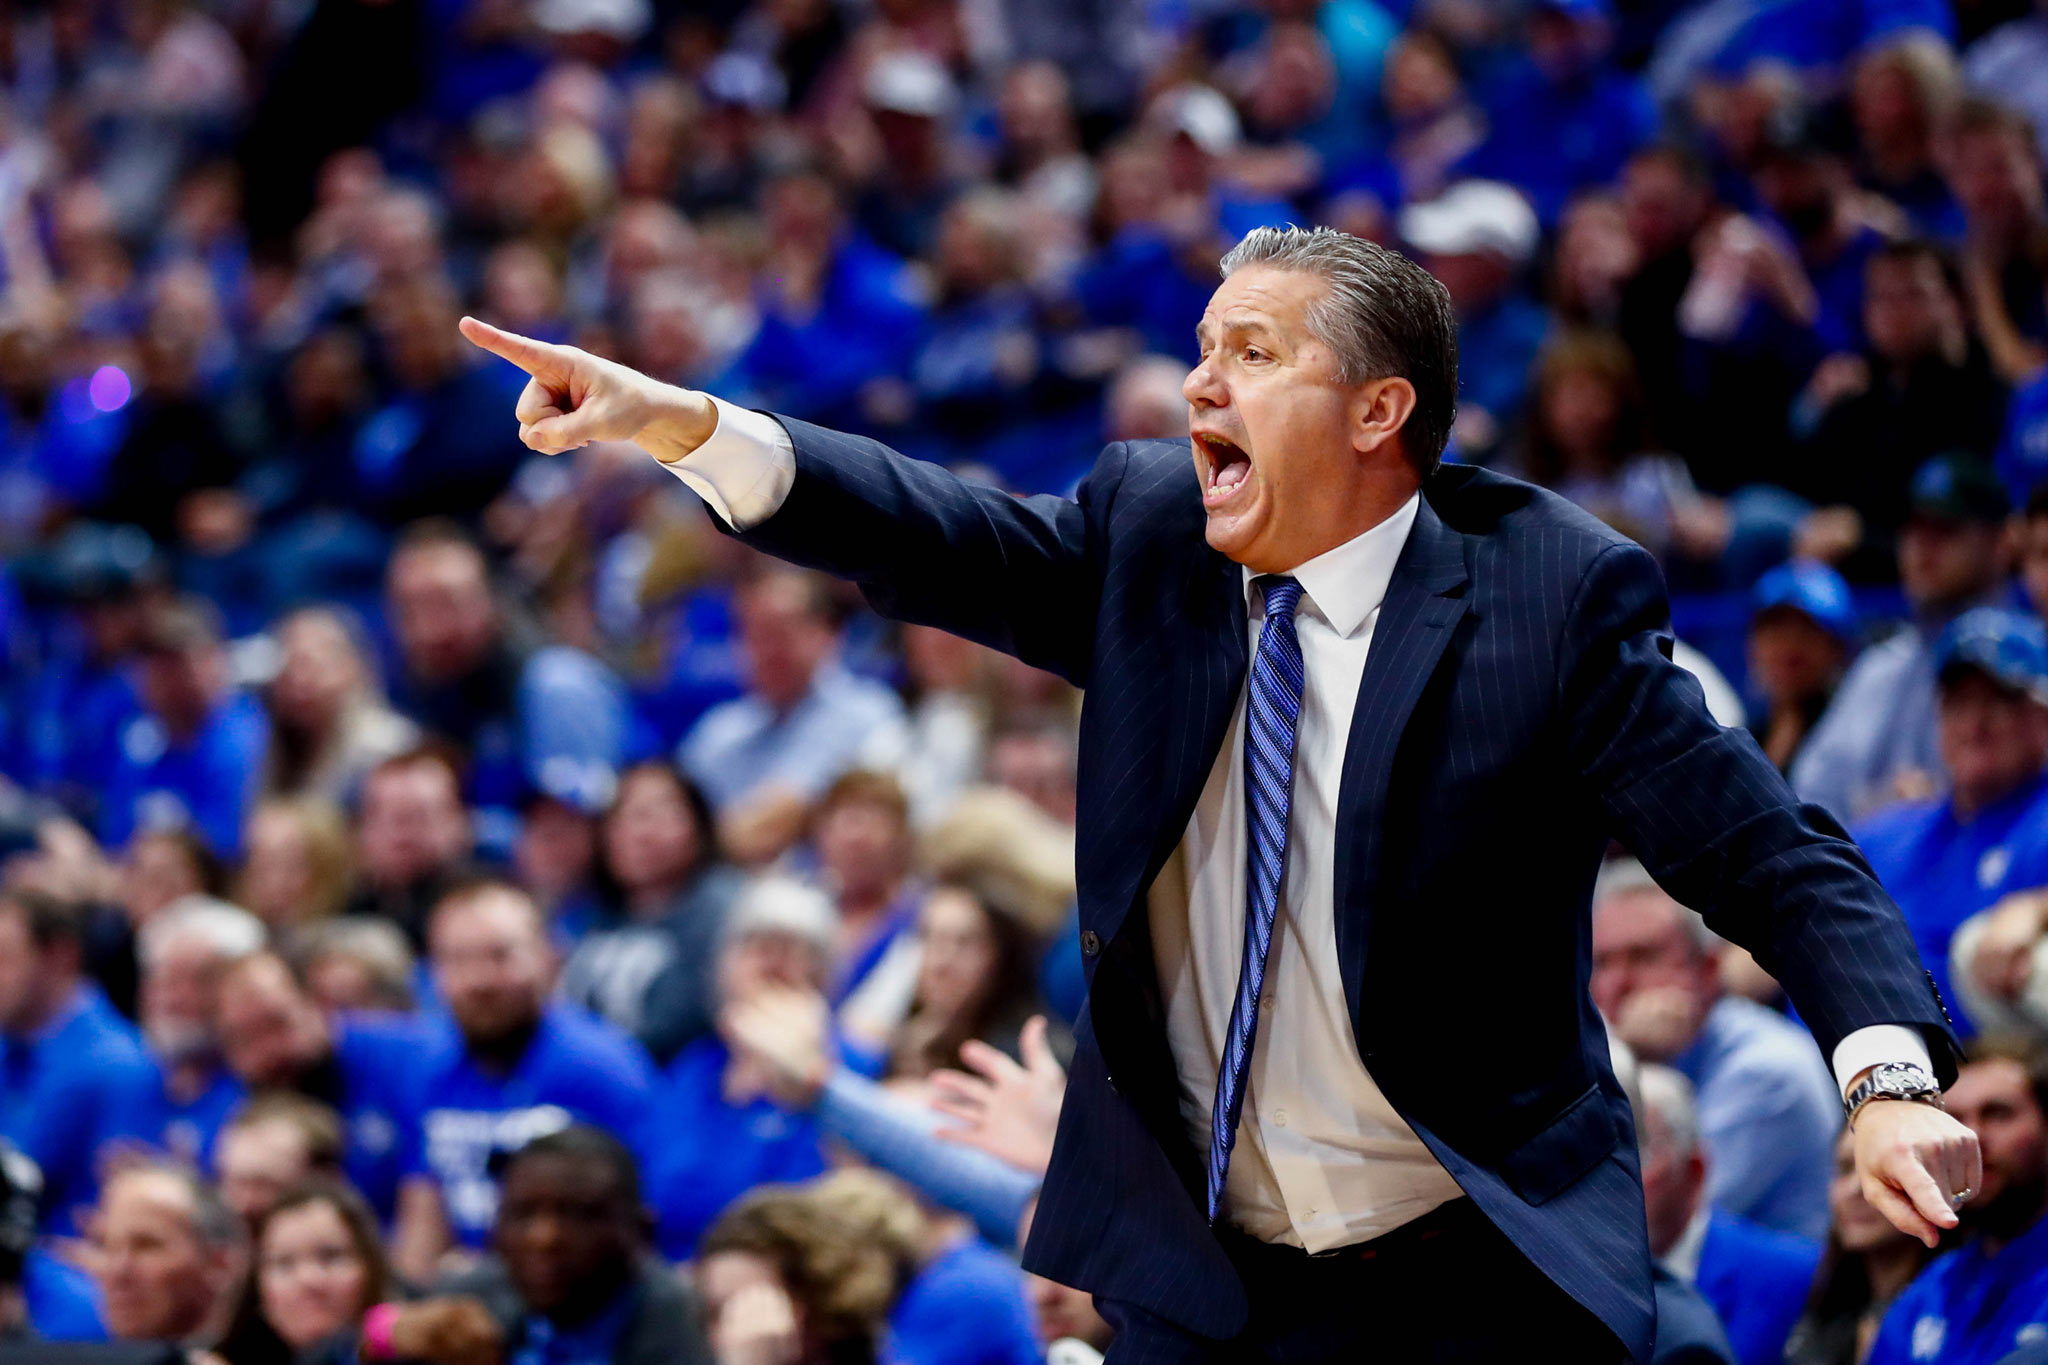 Coach Calipari yells excitedly and points during a game.